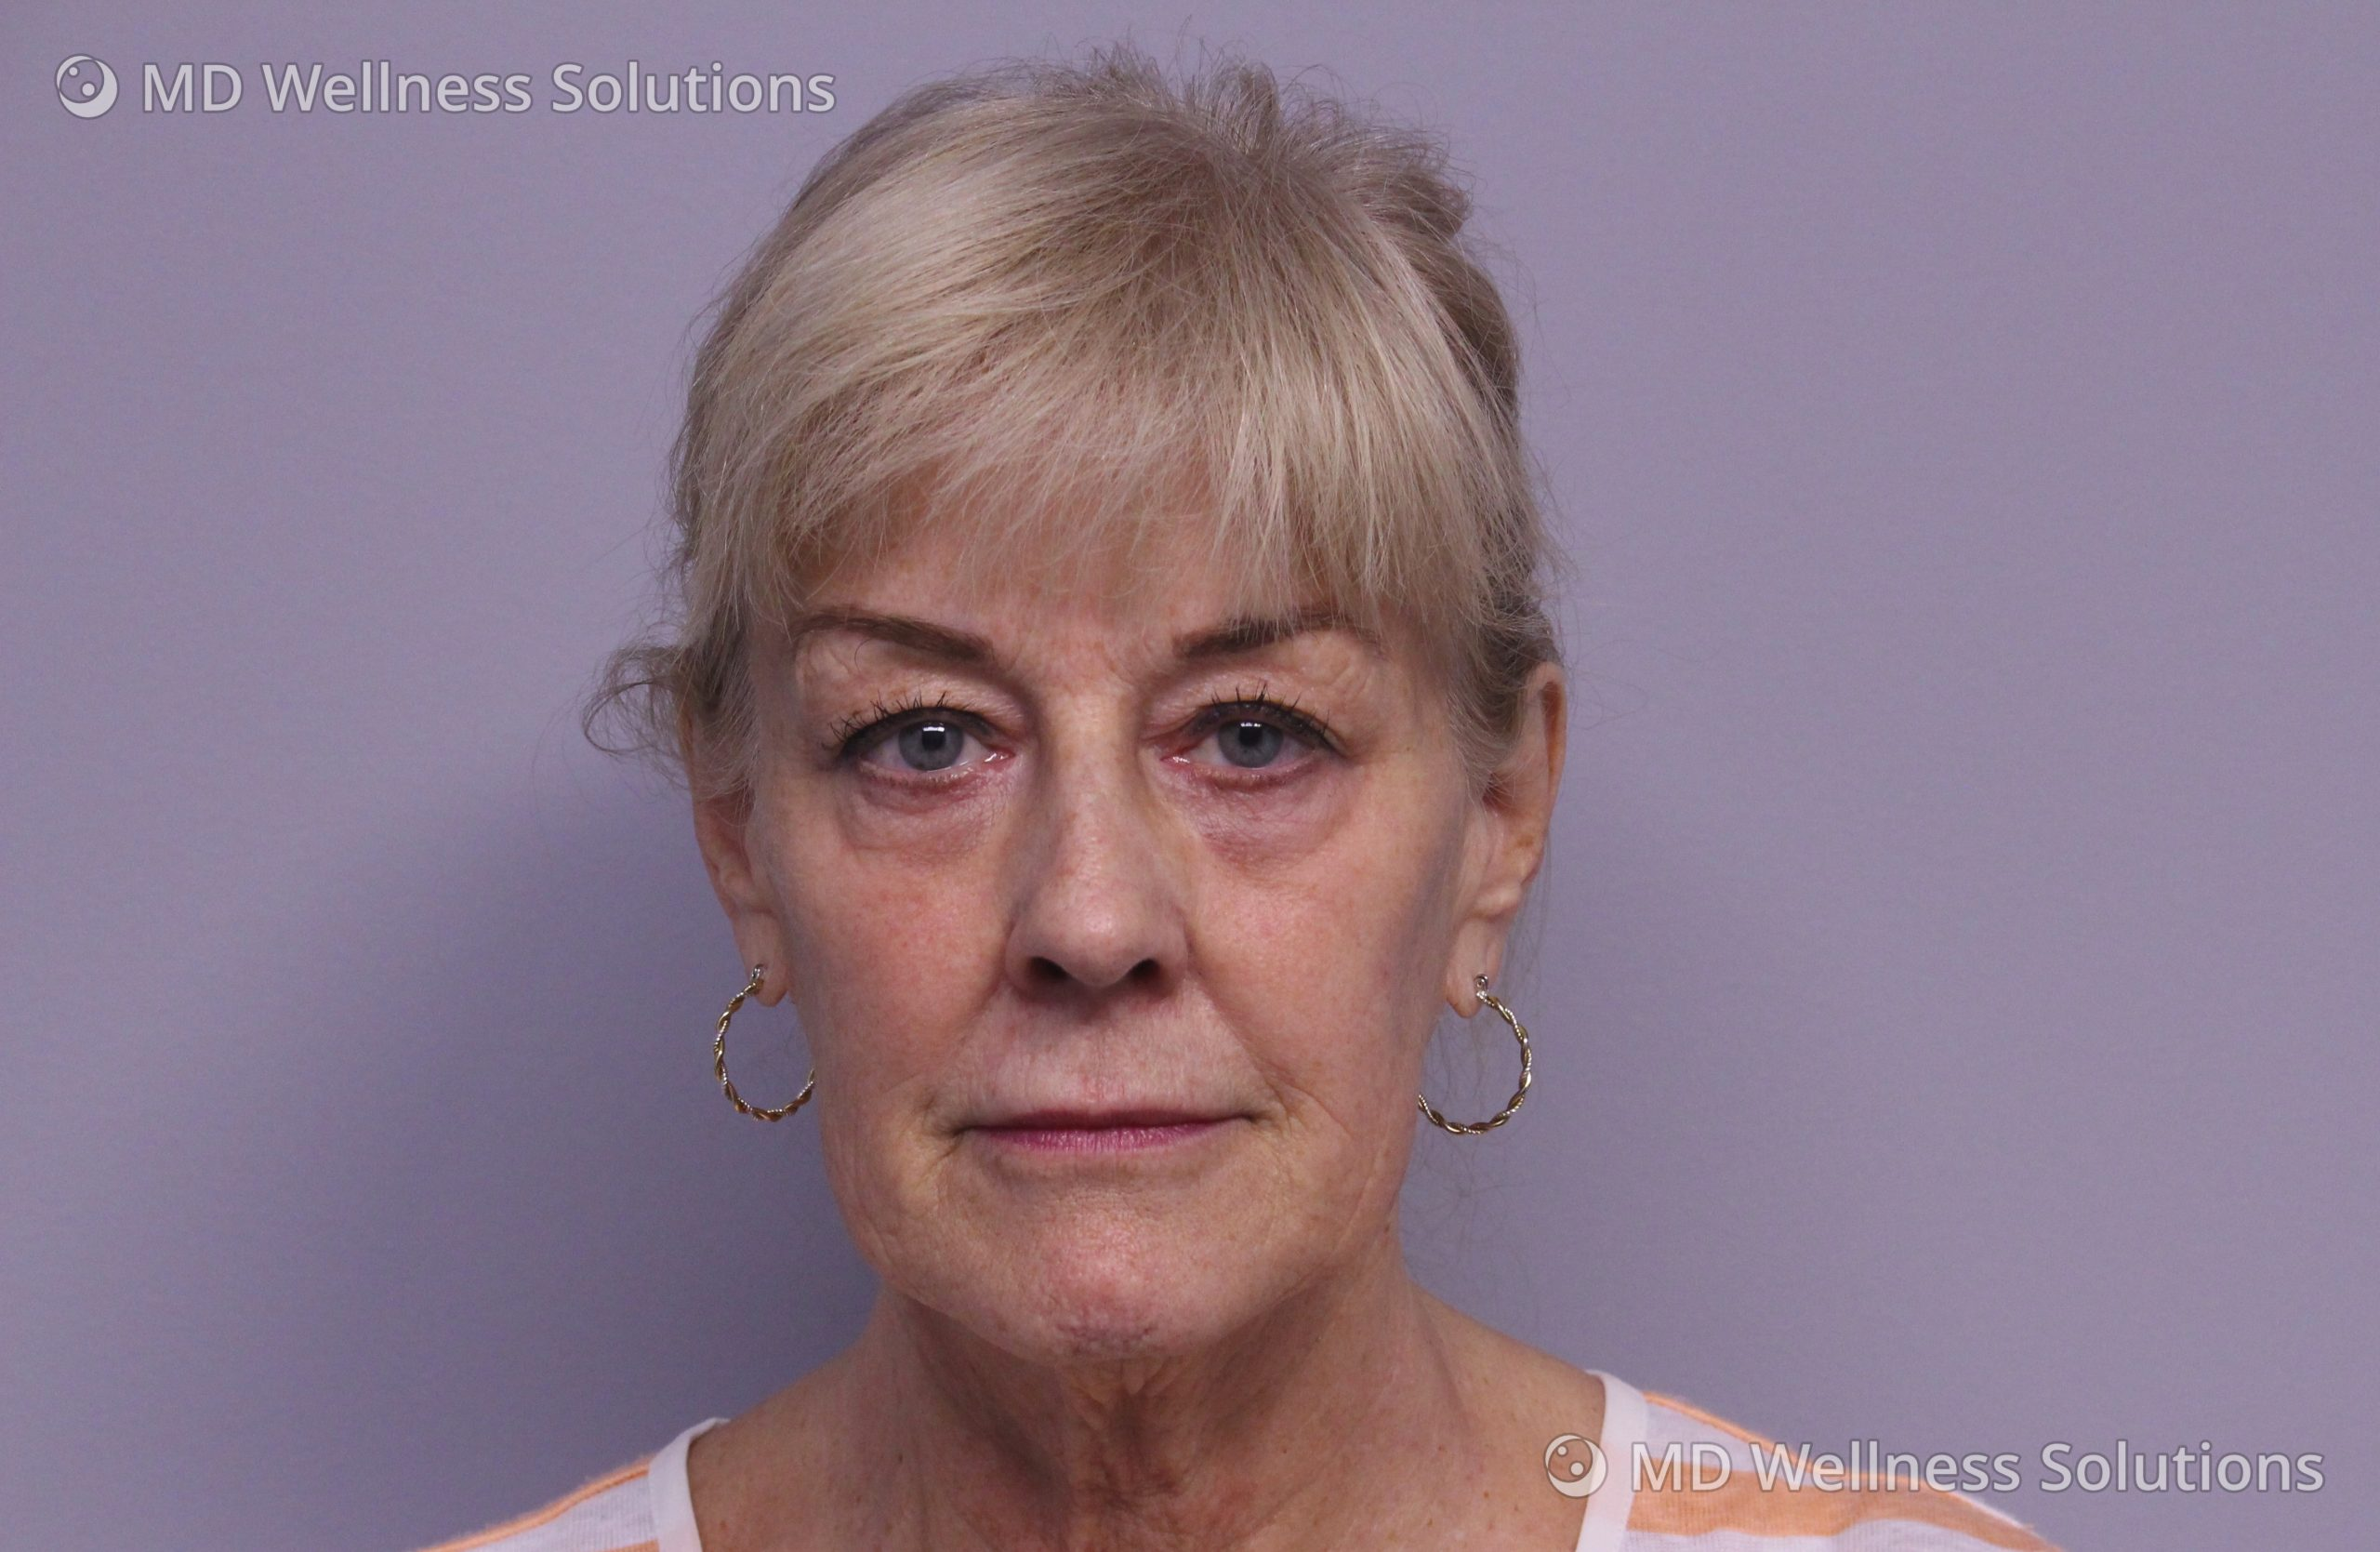 65-74 year old woman after dermal filler treatment